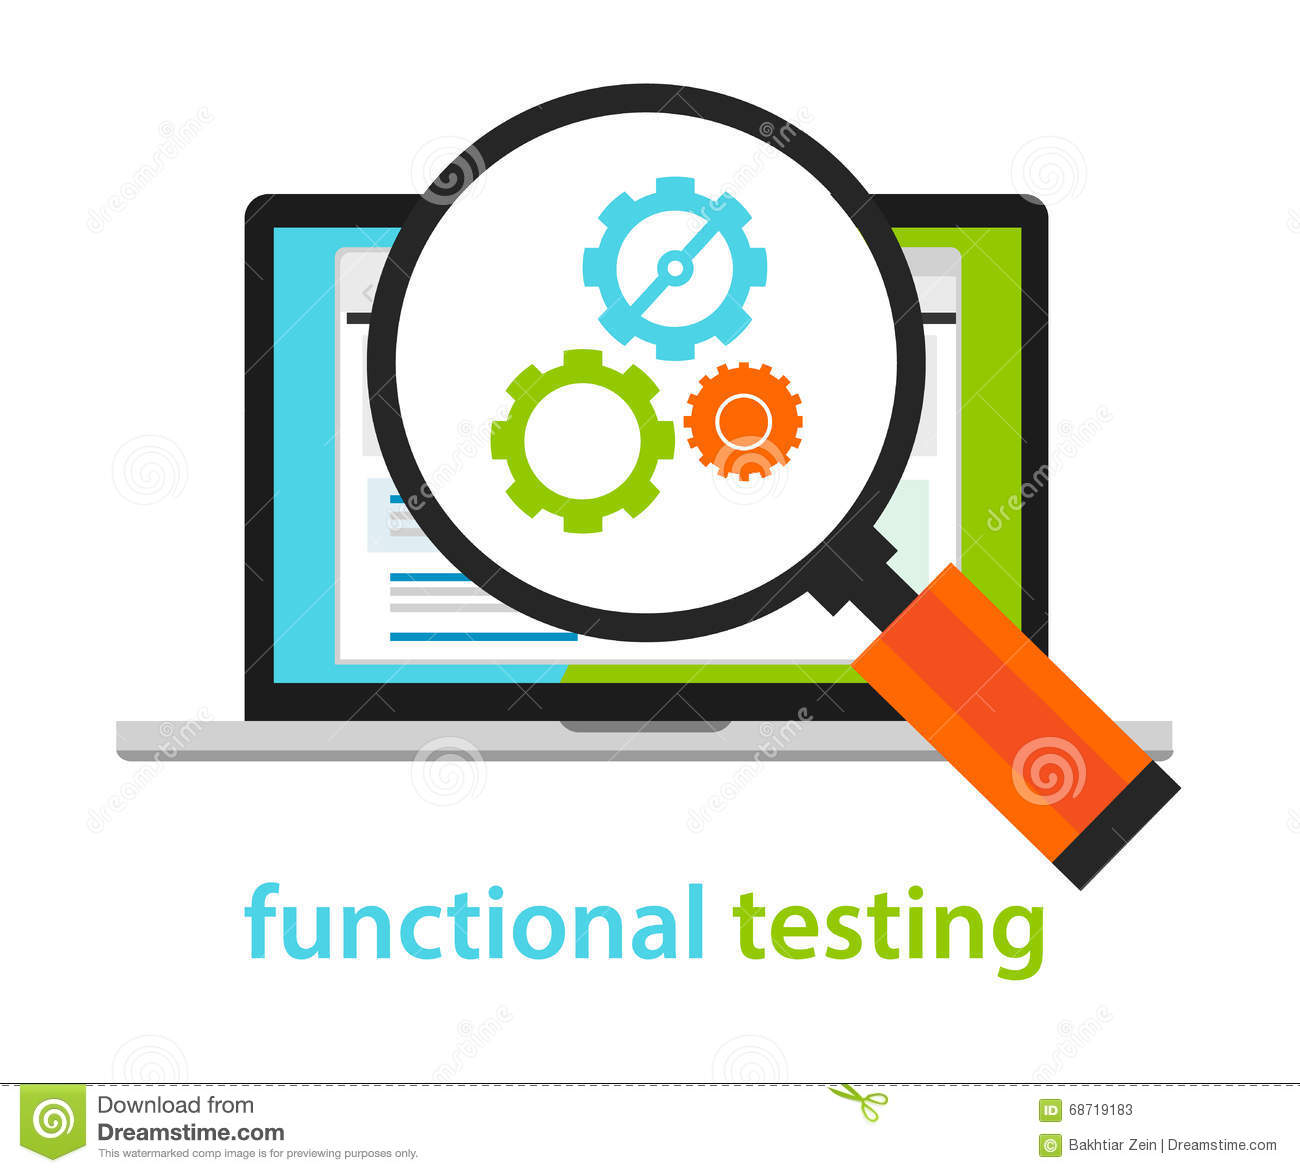 Functional testing software development process methodology